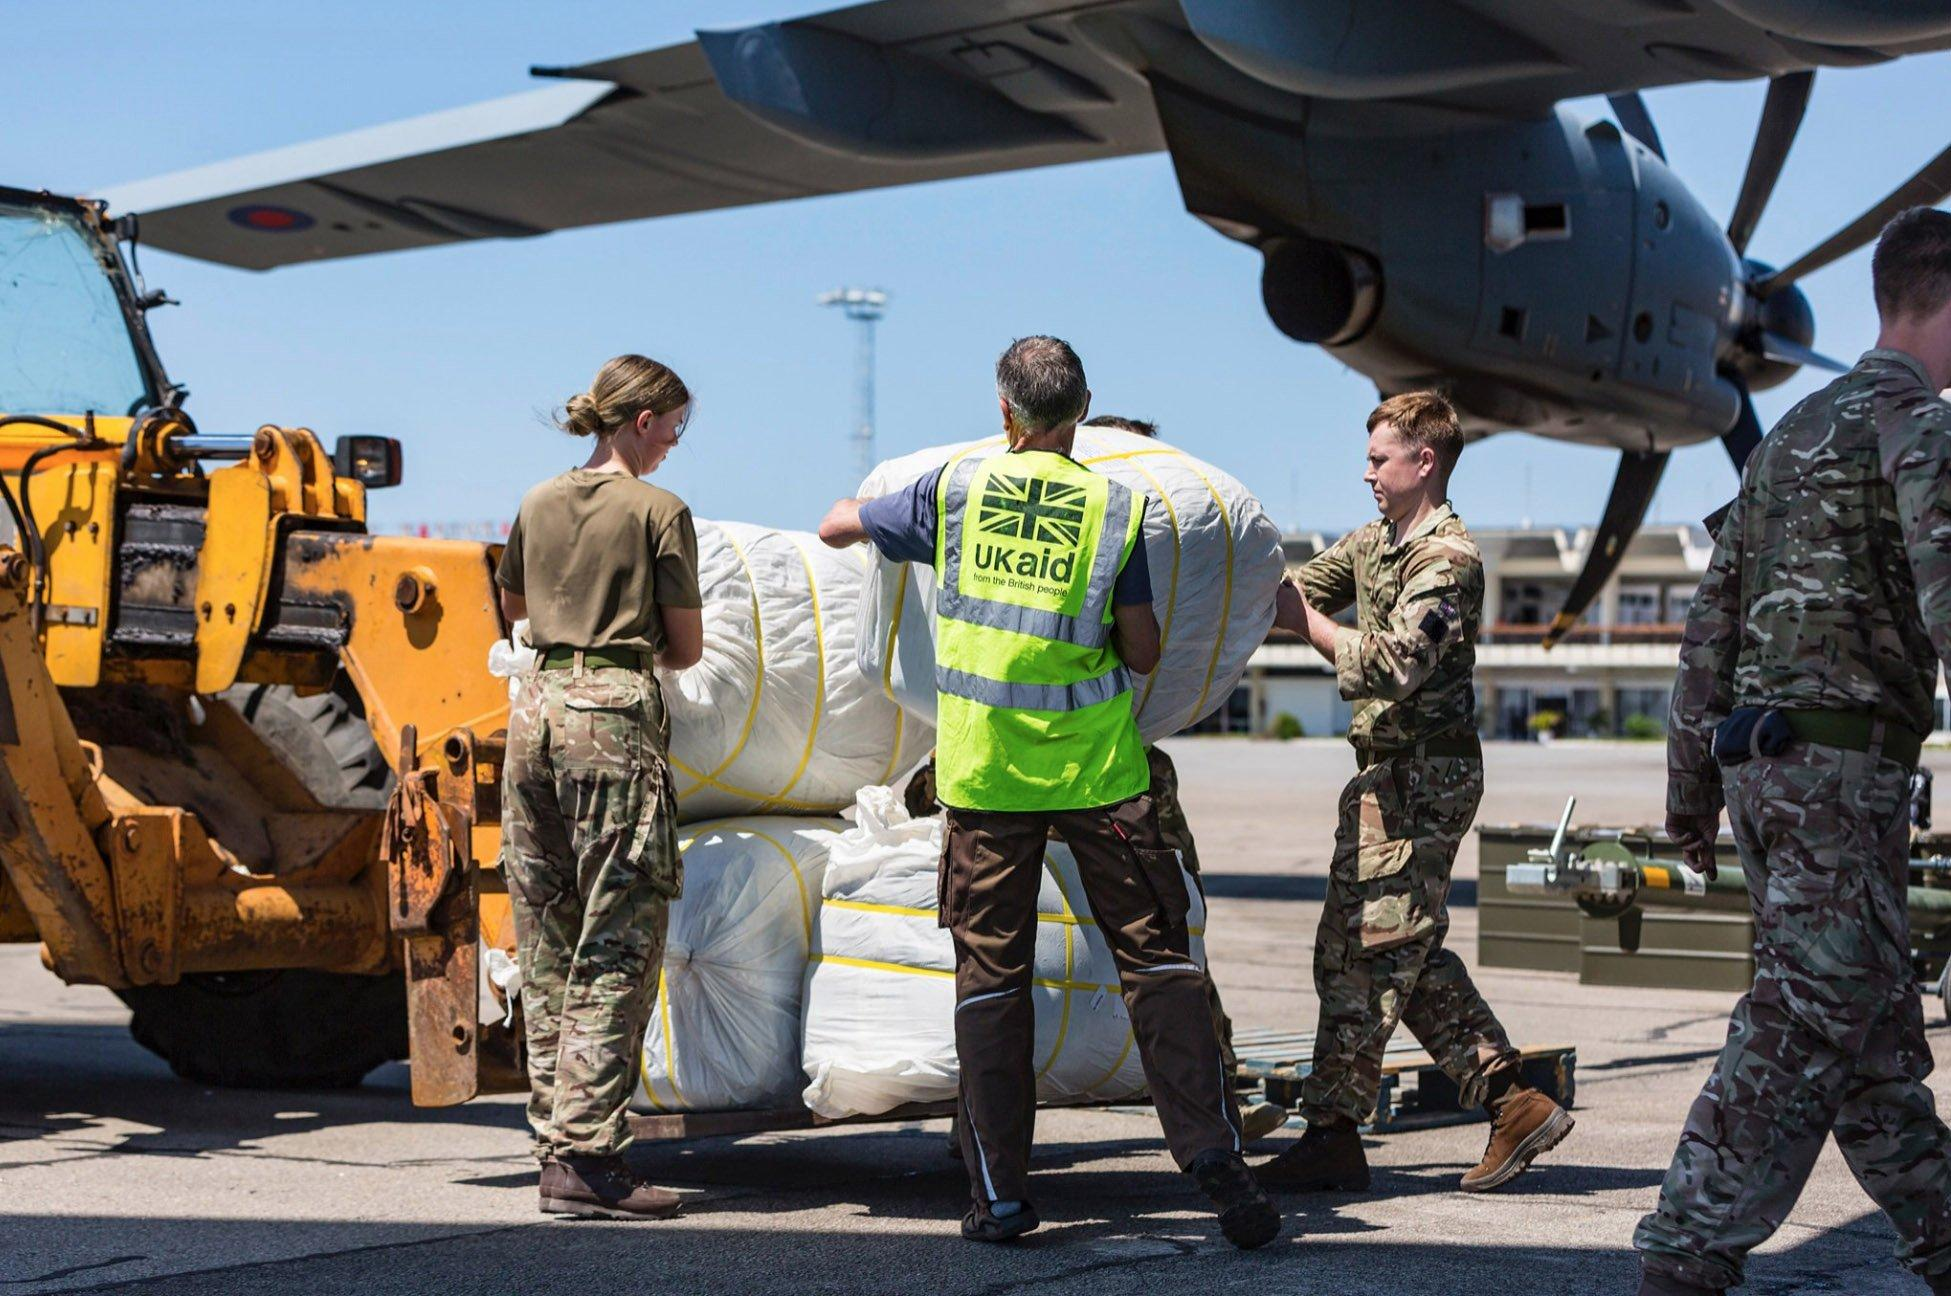 Opinion: Euan McColm: Plan to cut overseas aid will make us even weaker after Brexit